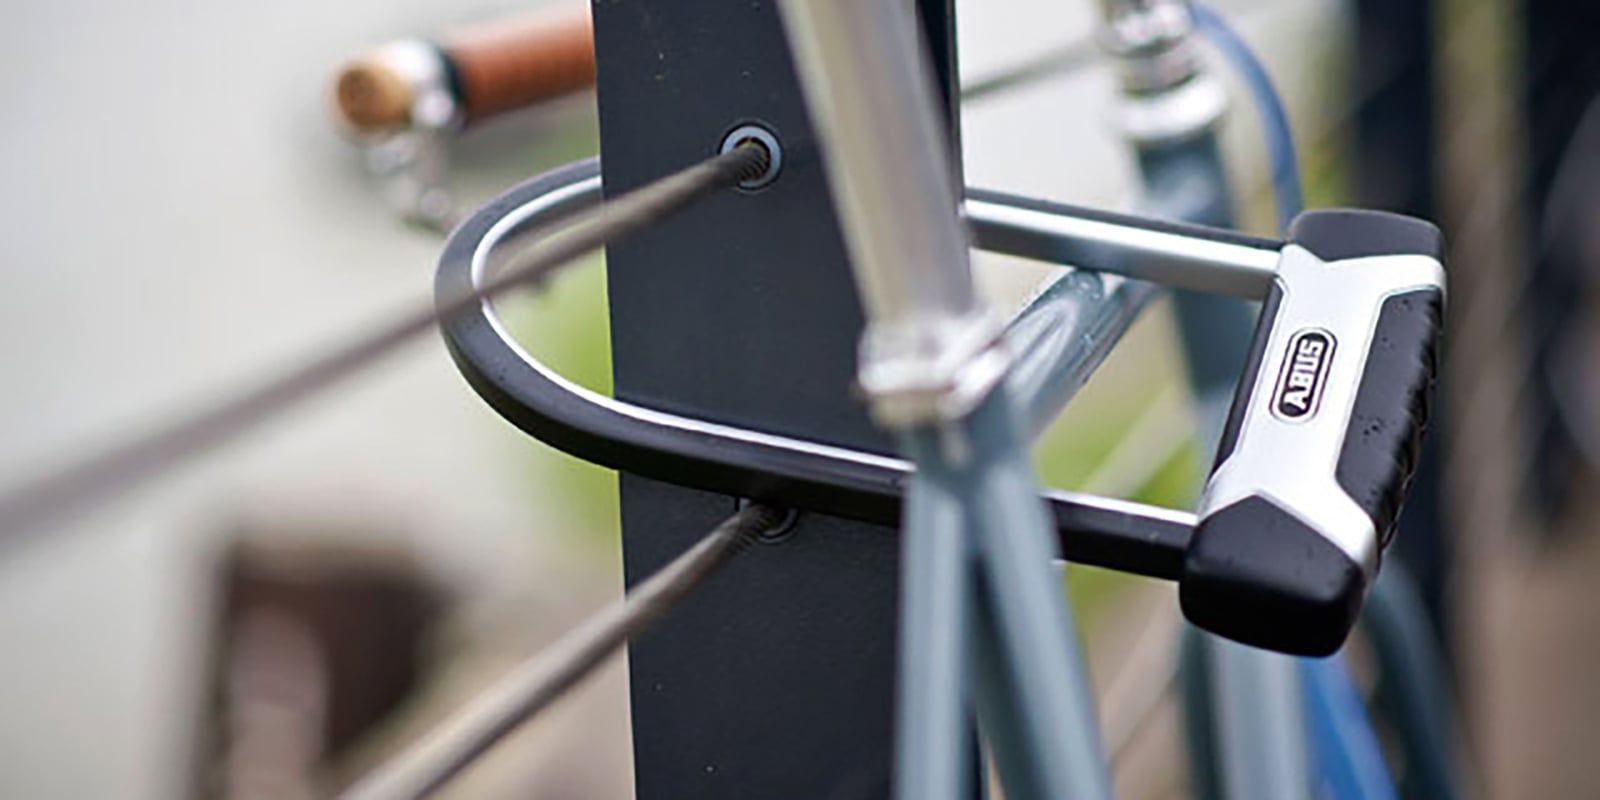 Picking The Bicycle Lock Is A Crucial Part Of Keeping Your Bike